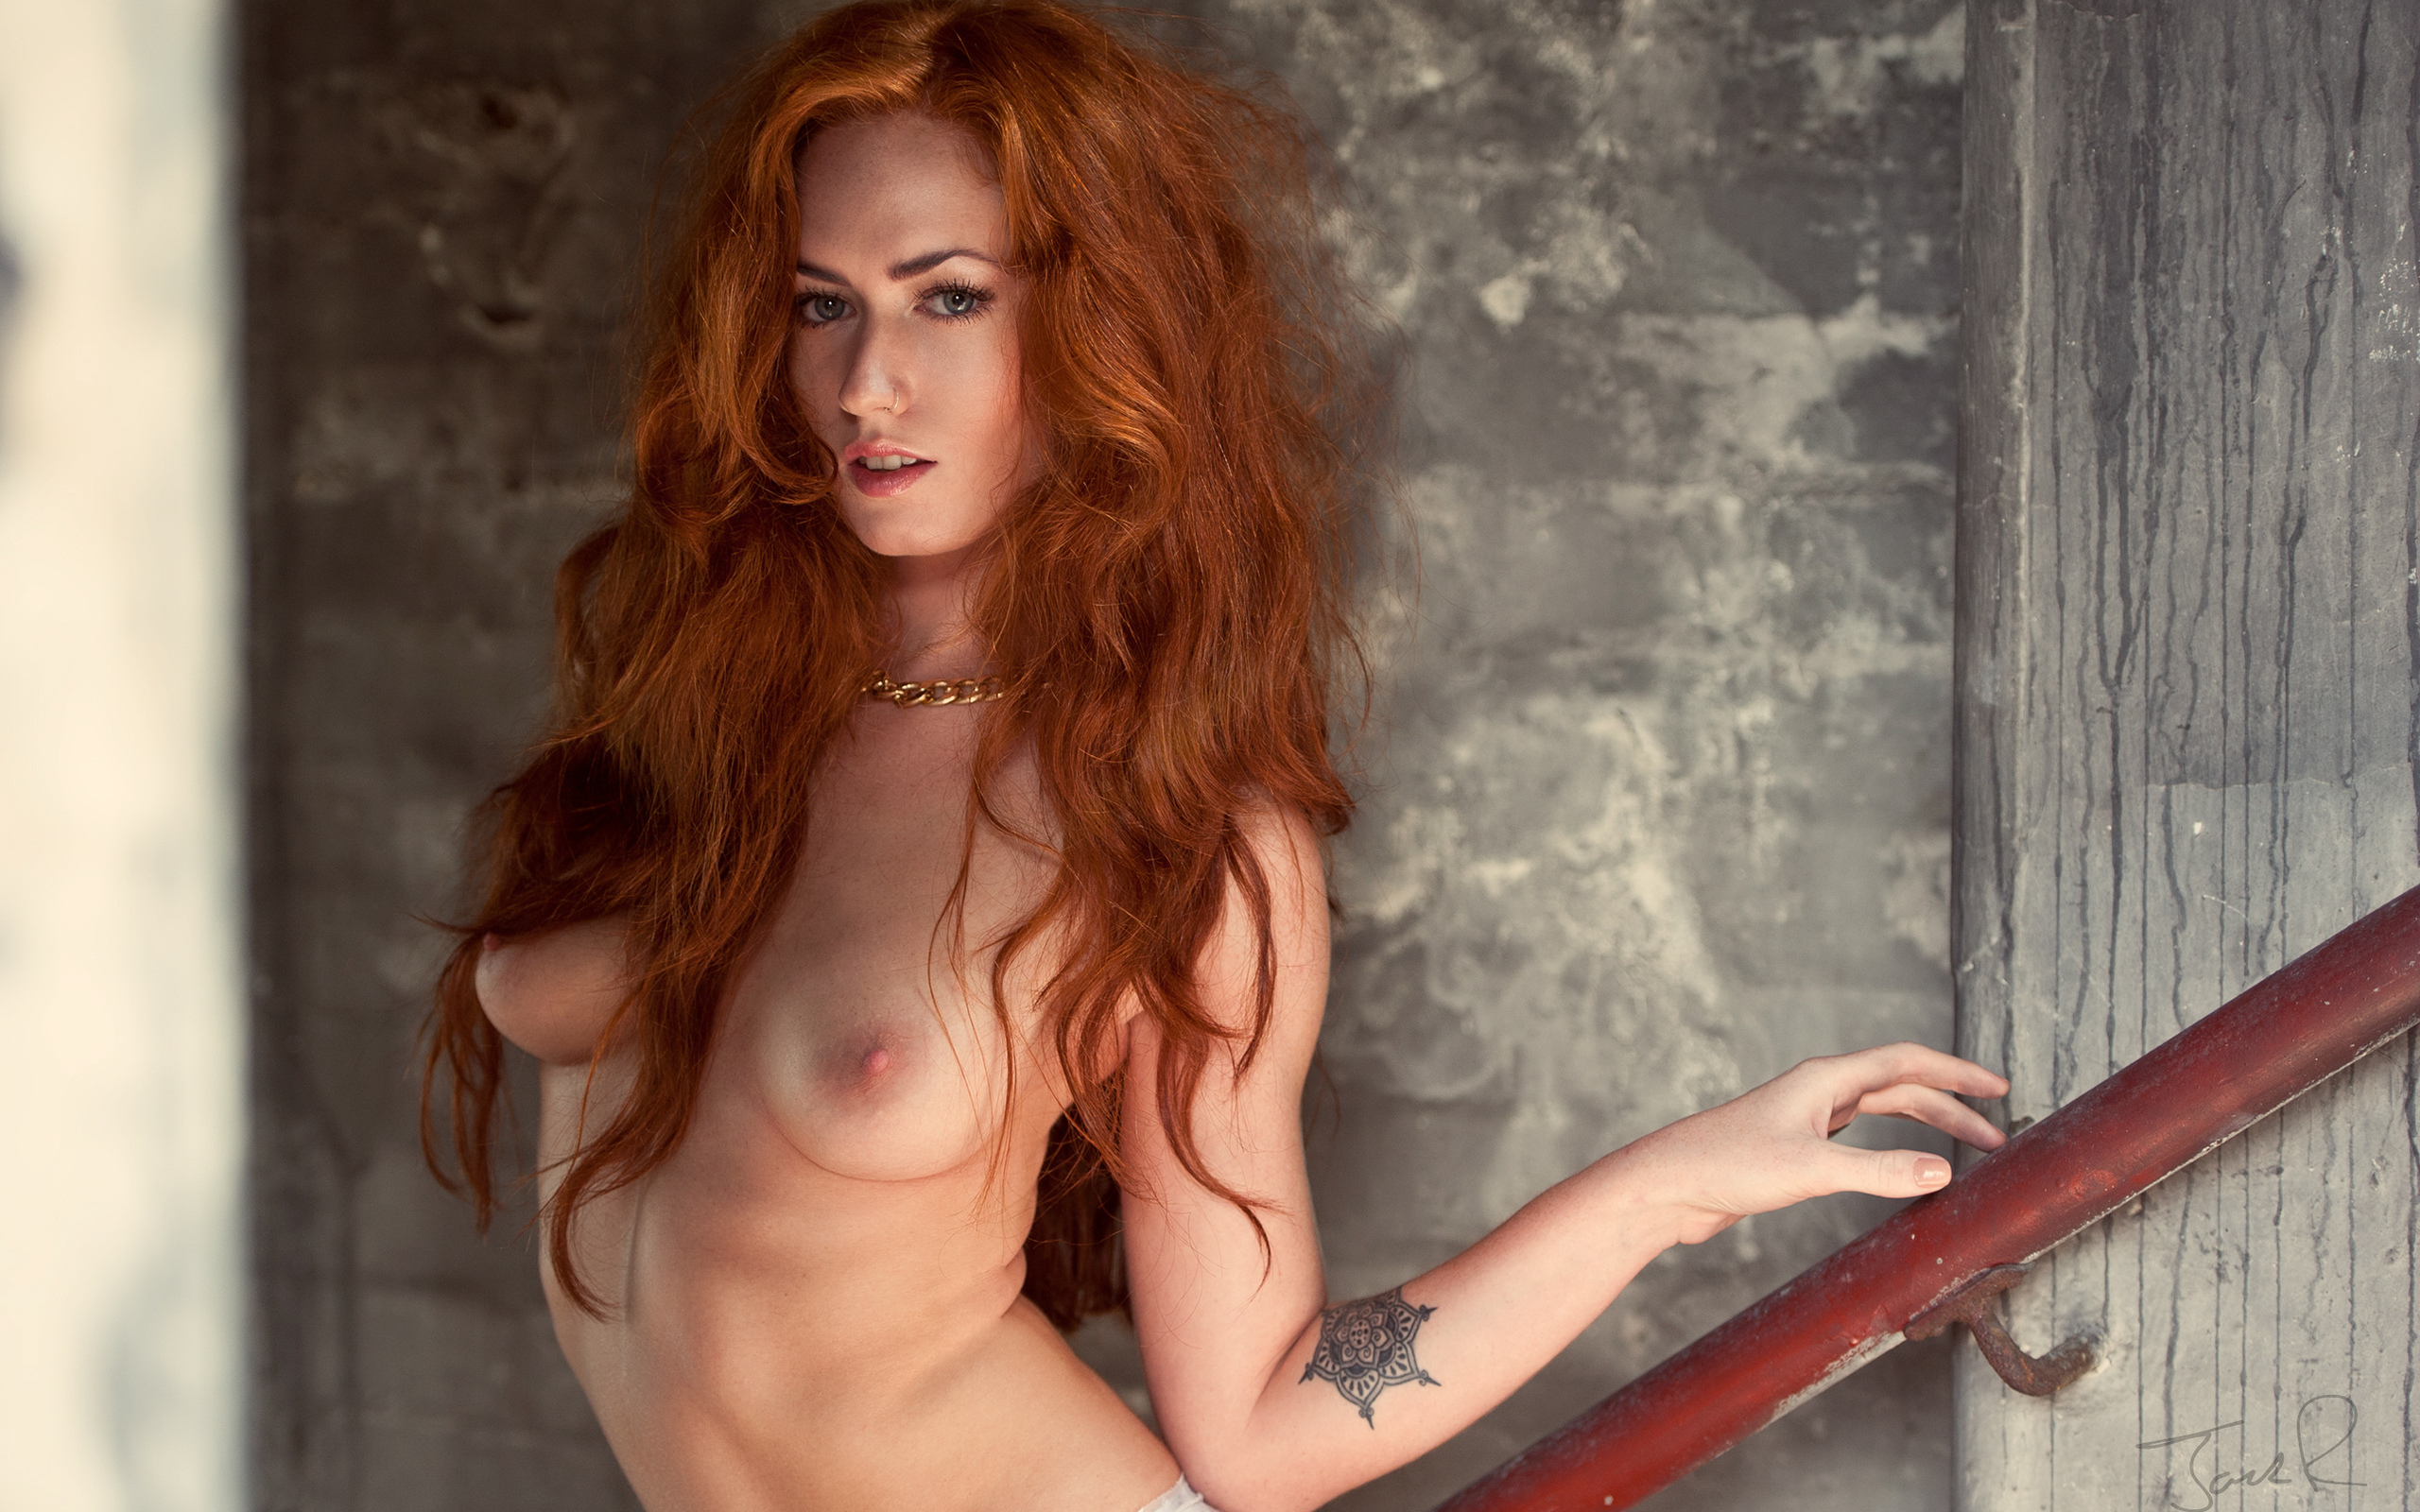 Naked sexy redhead girls and women — pic 14